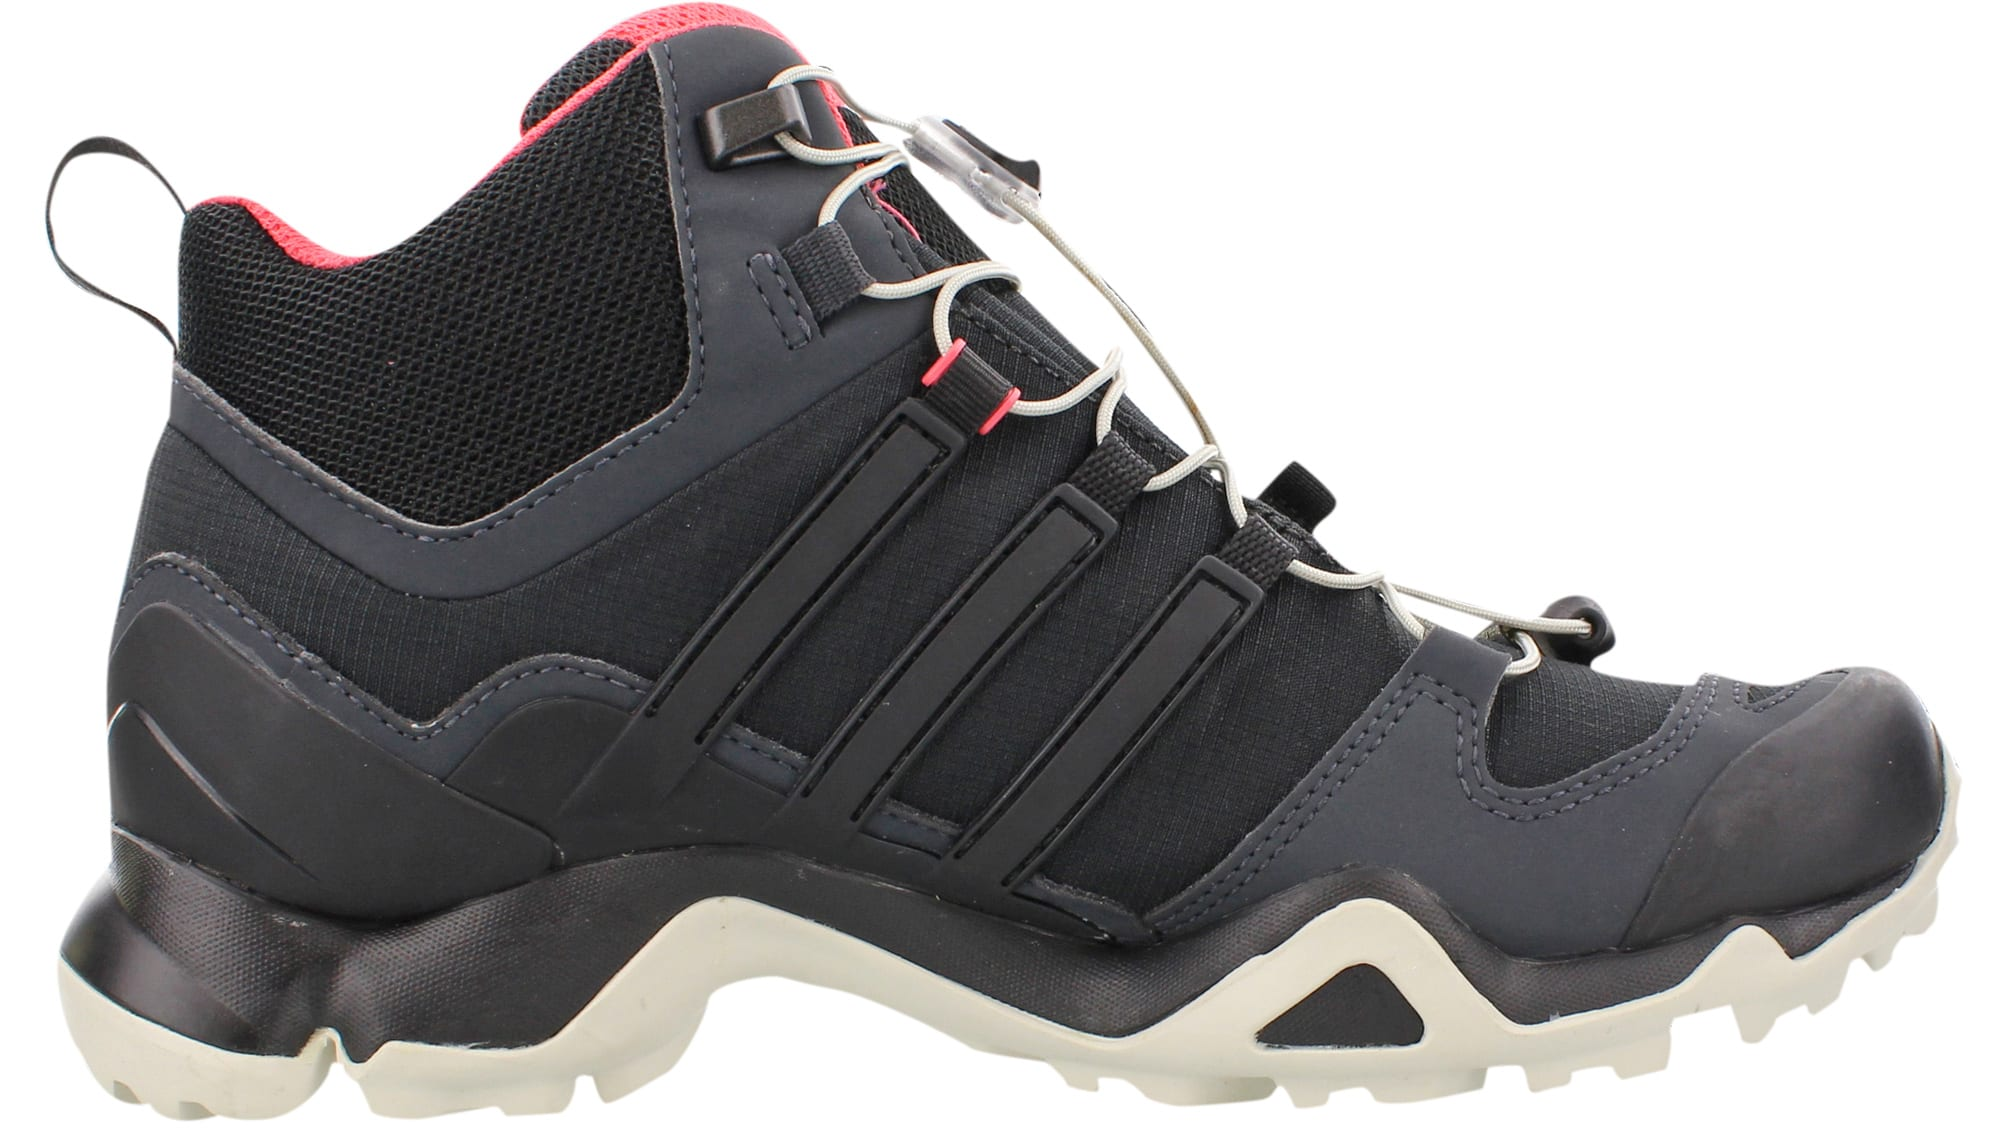 06436796ed9c Adidas Terrex Swift R Mid GTX Hiking Boots - thumbnail 2